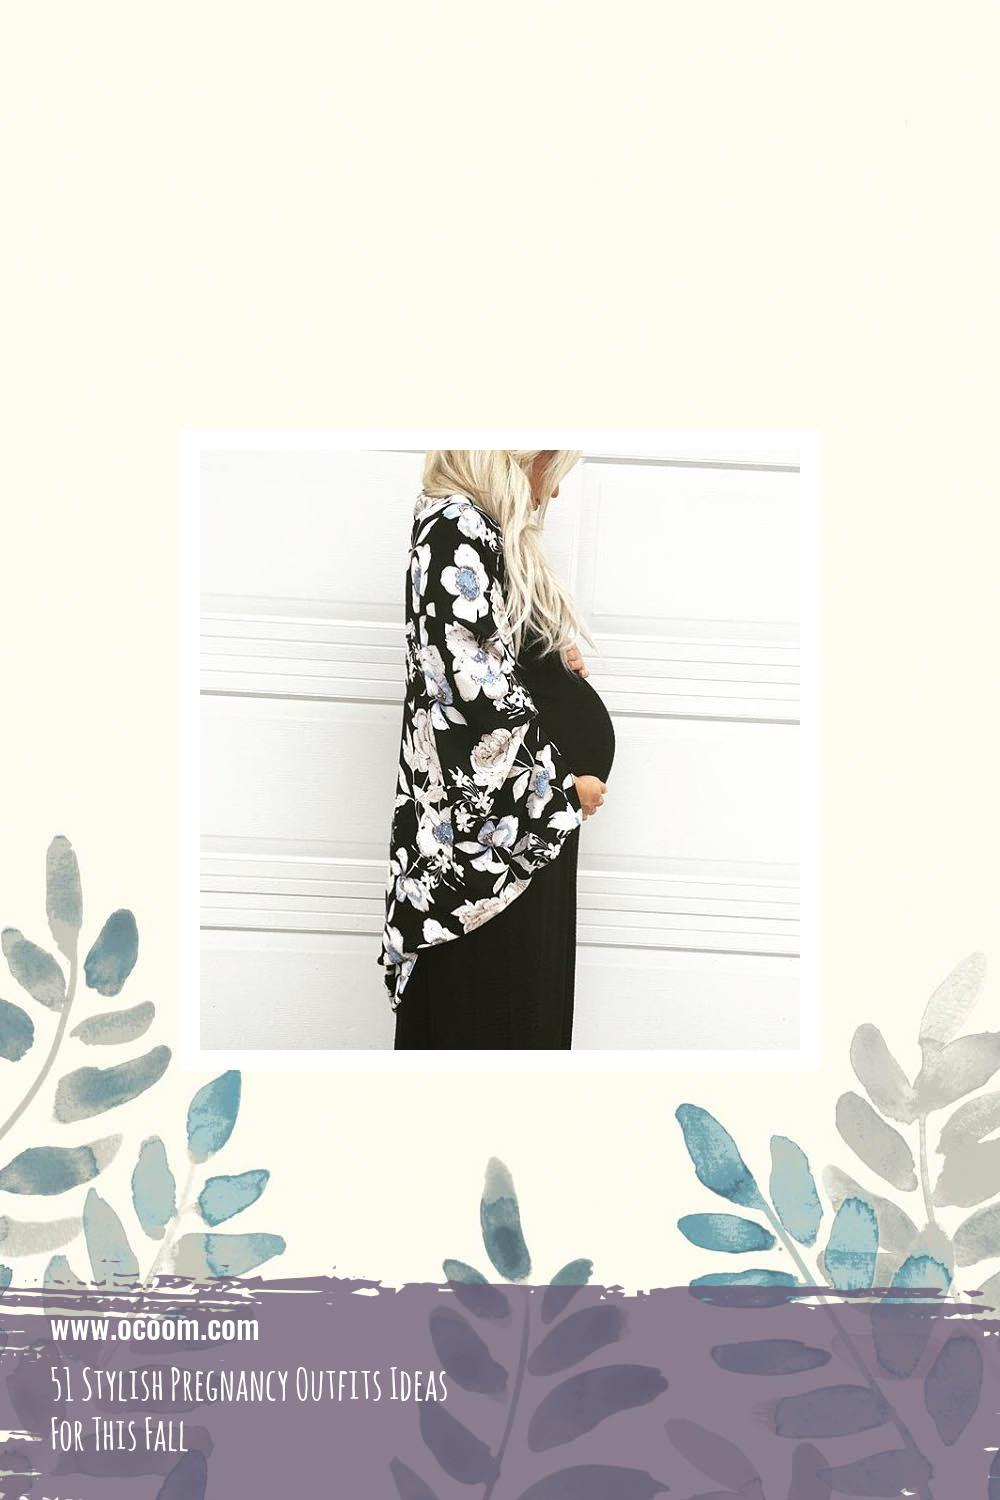 51 Stylish Pregnancy Outfits Ideas For This Fall 15